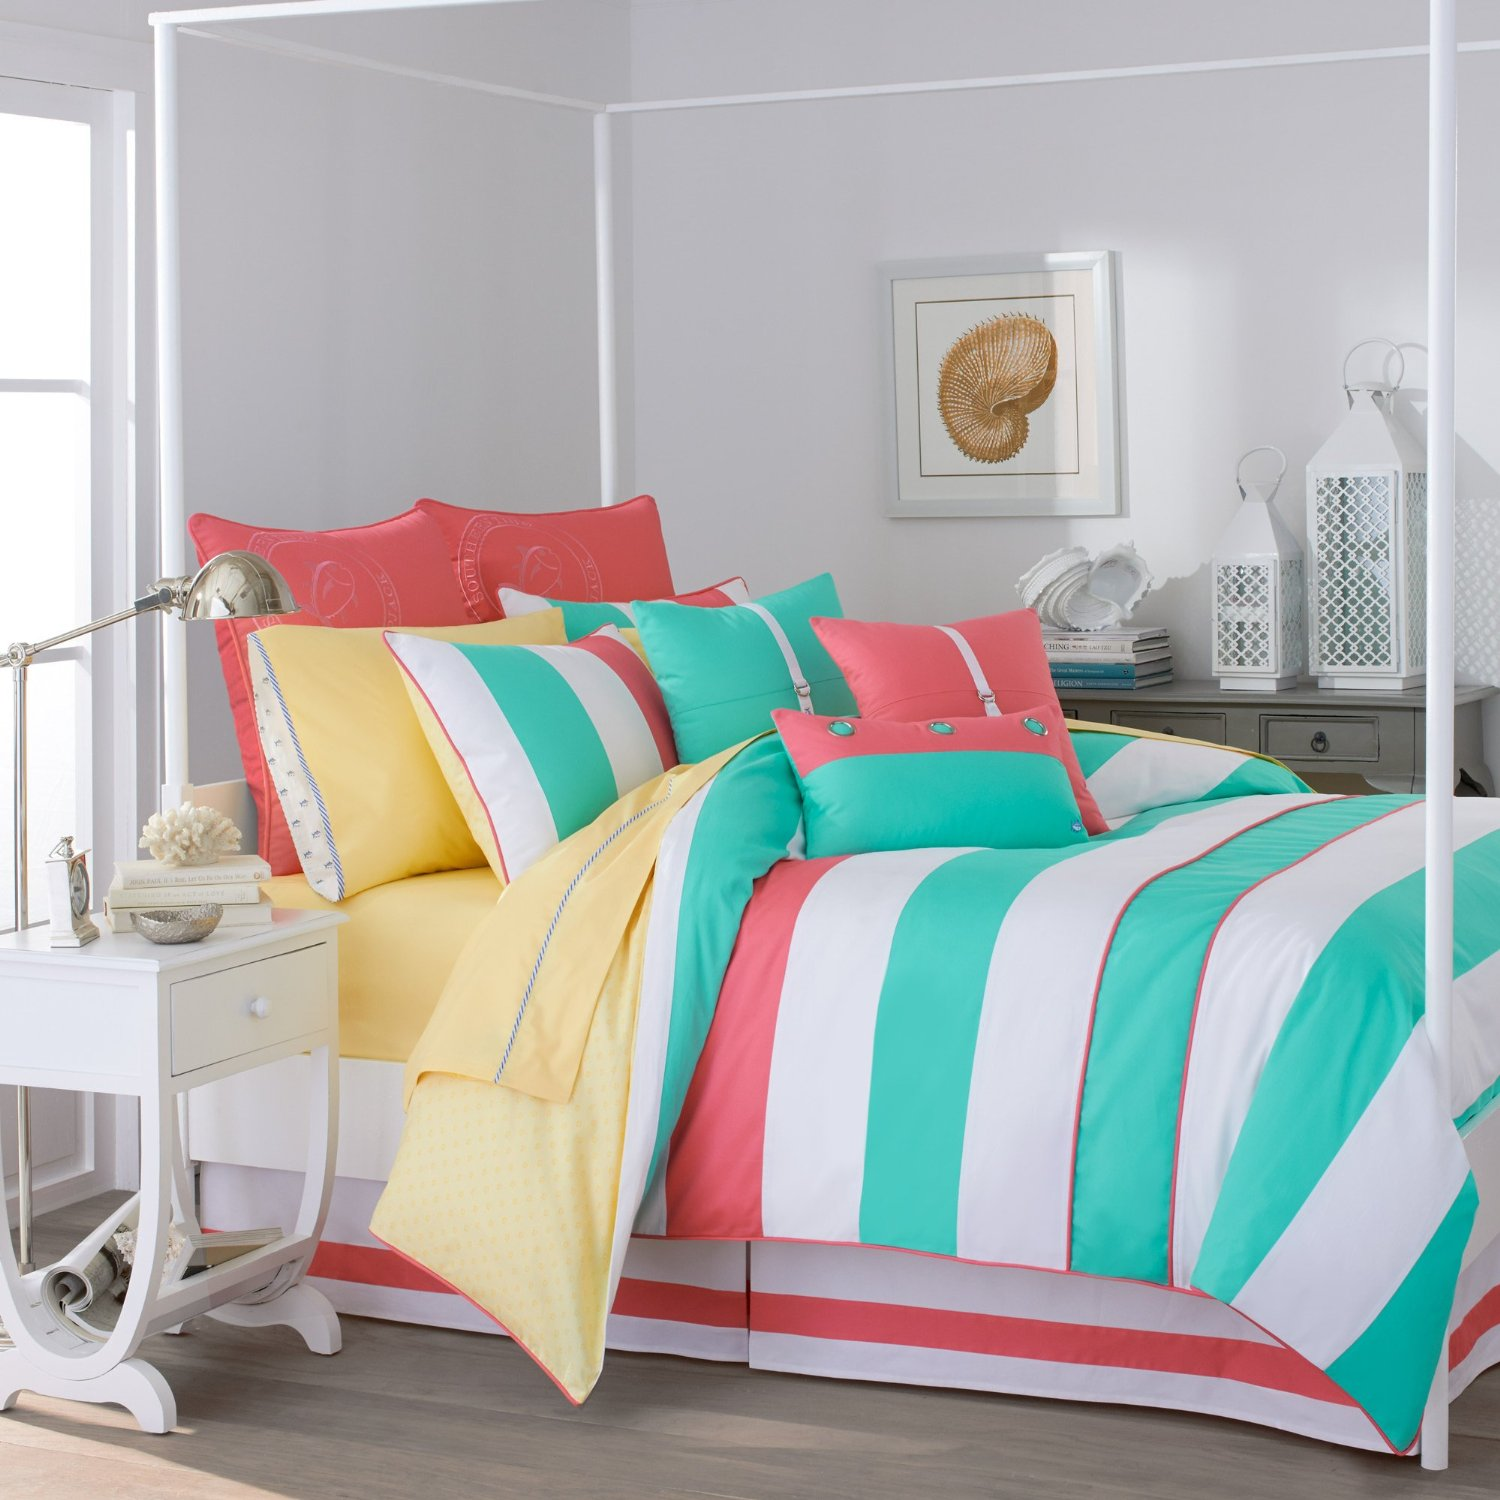 Colorful Stripe Bedding For Teen Girls (View 3 of 10)